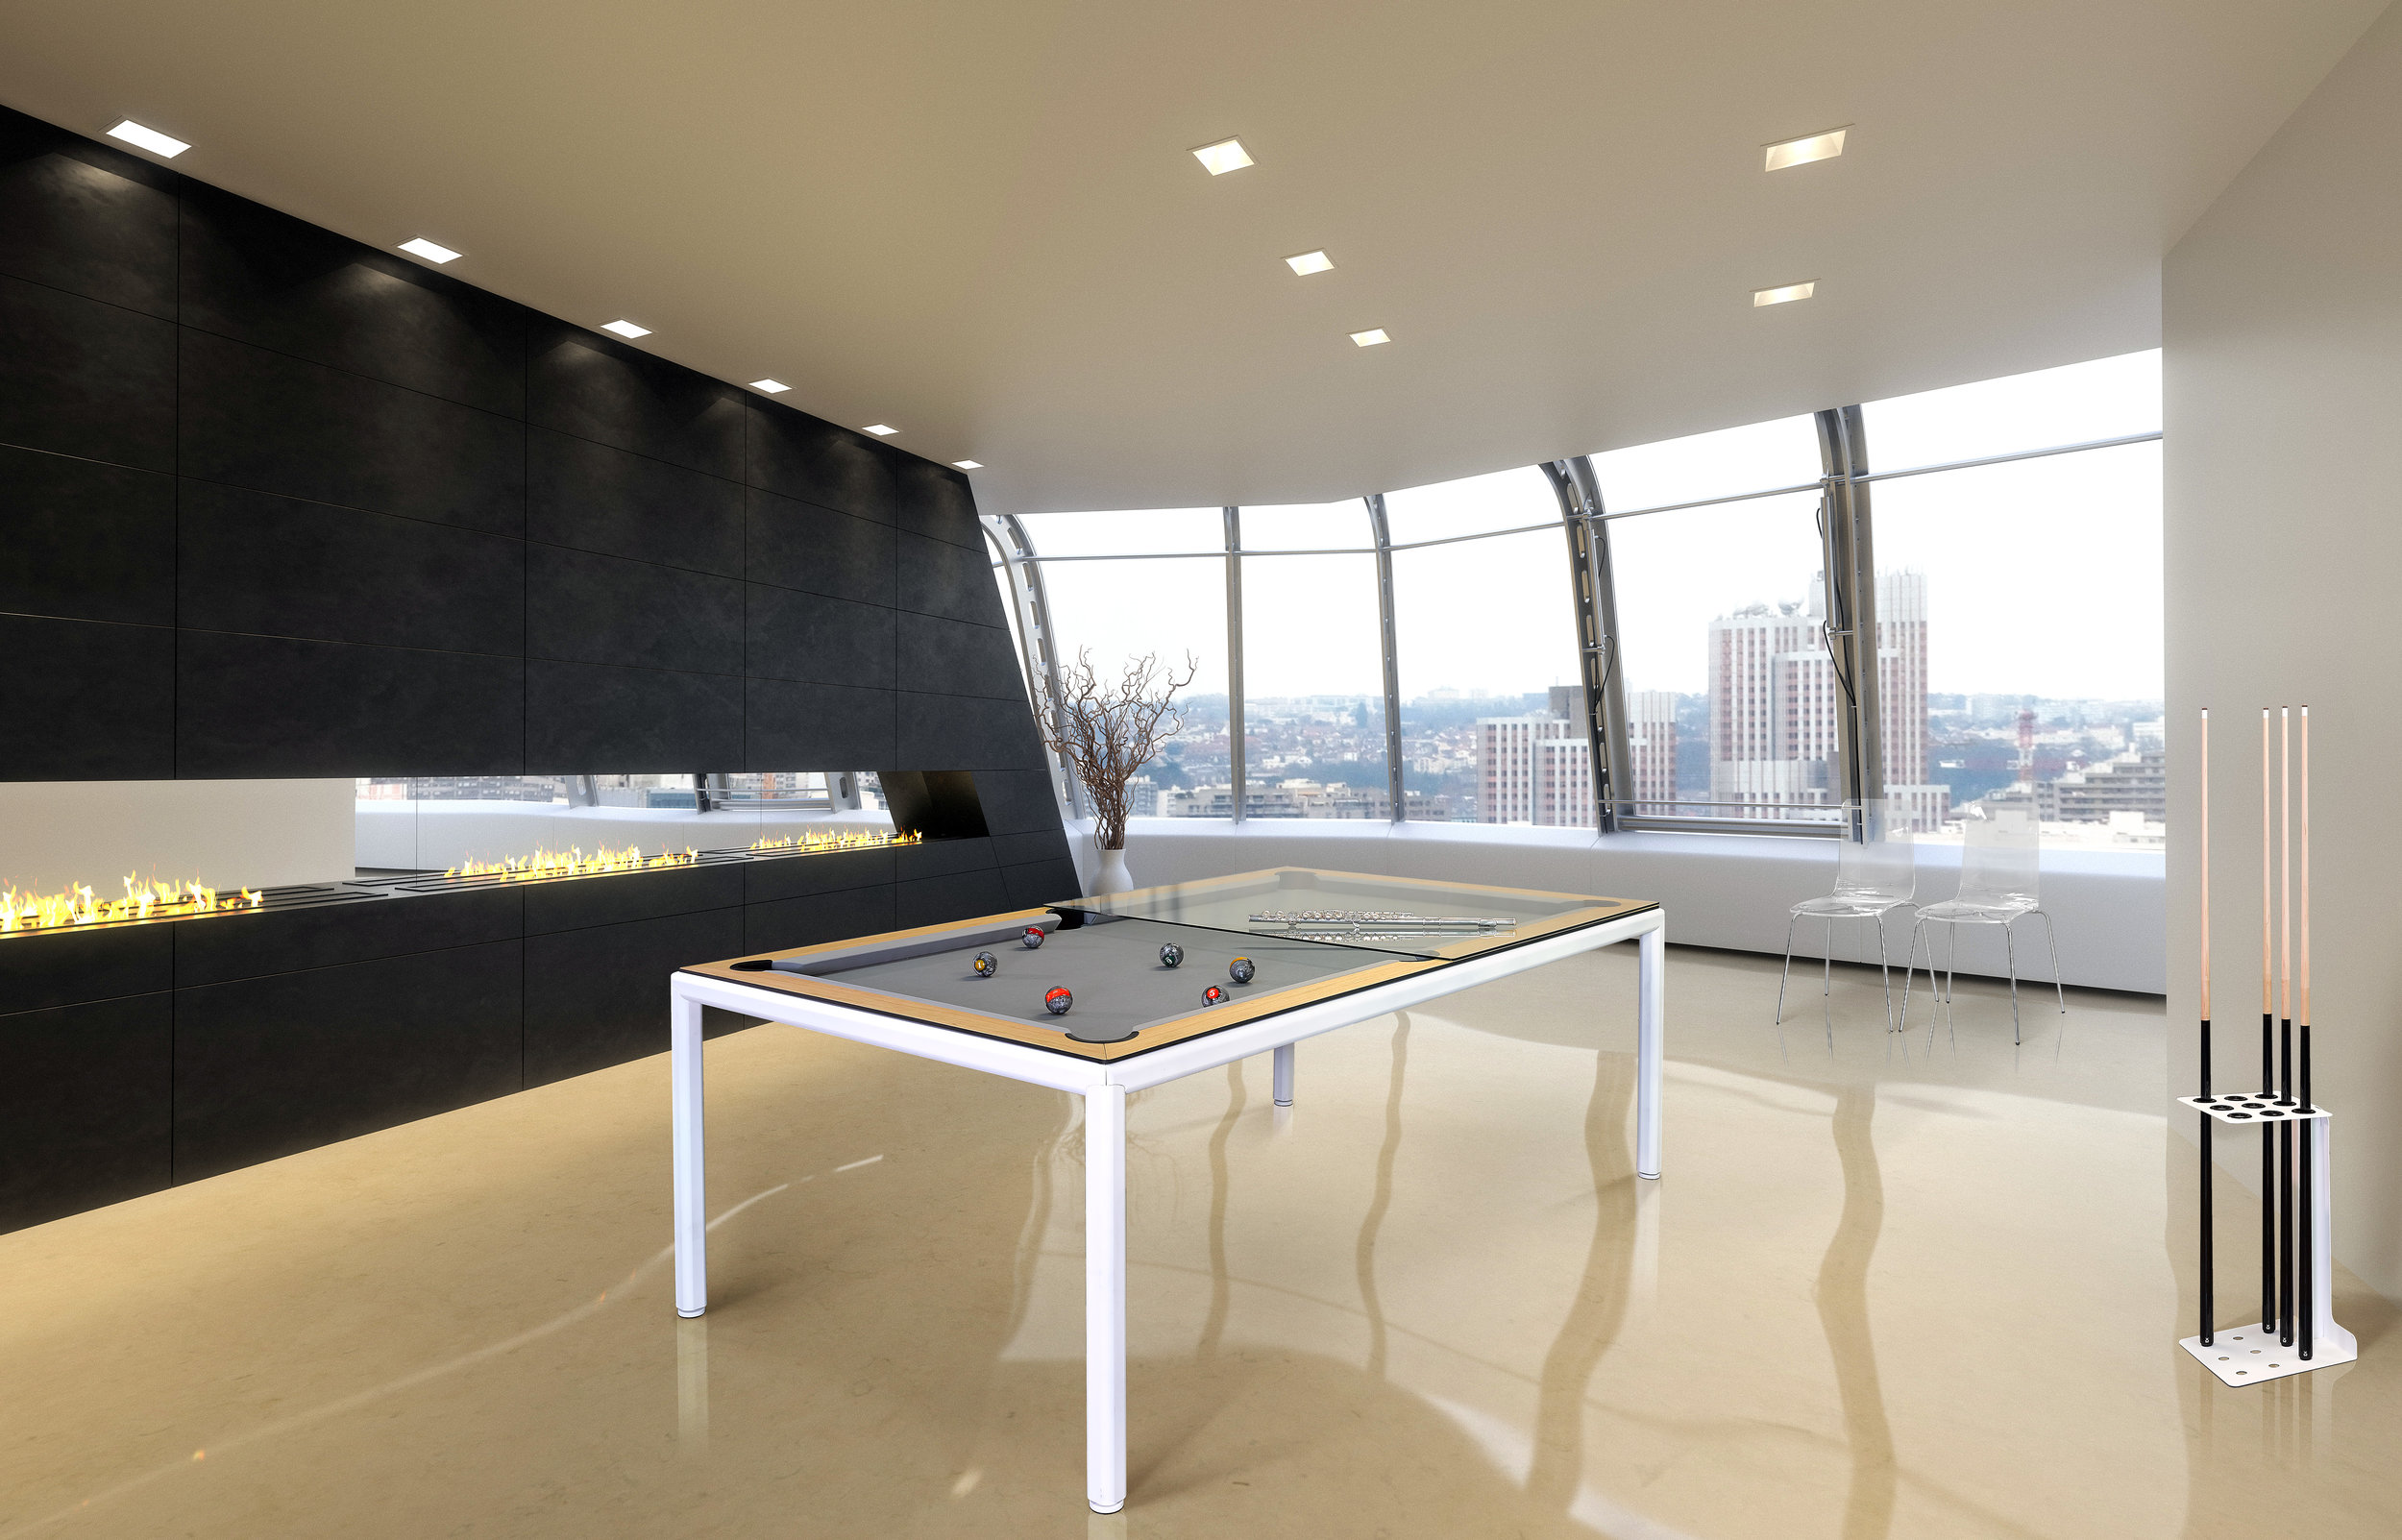 Billiard table Pronto ULTRA Balt_34364084.jpg